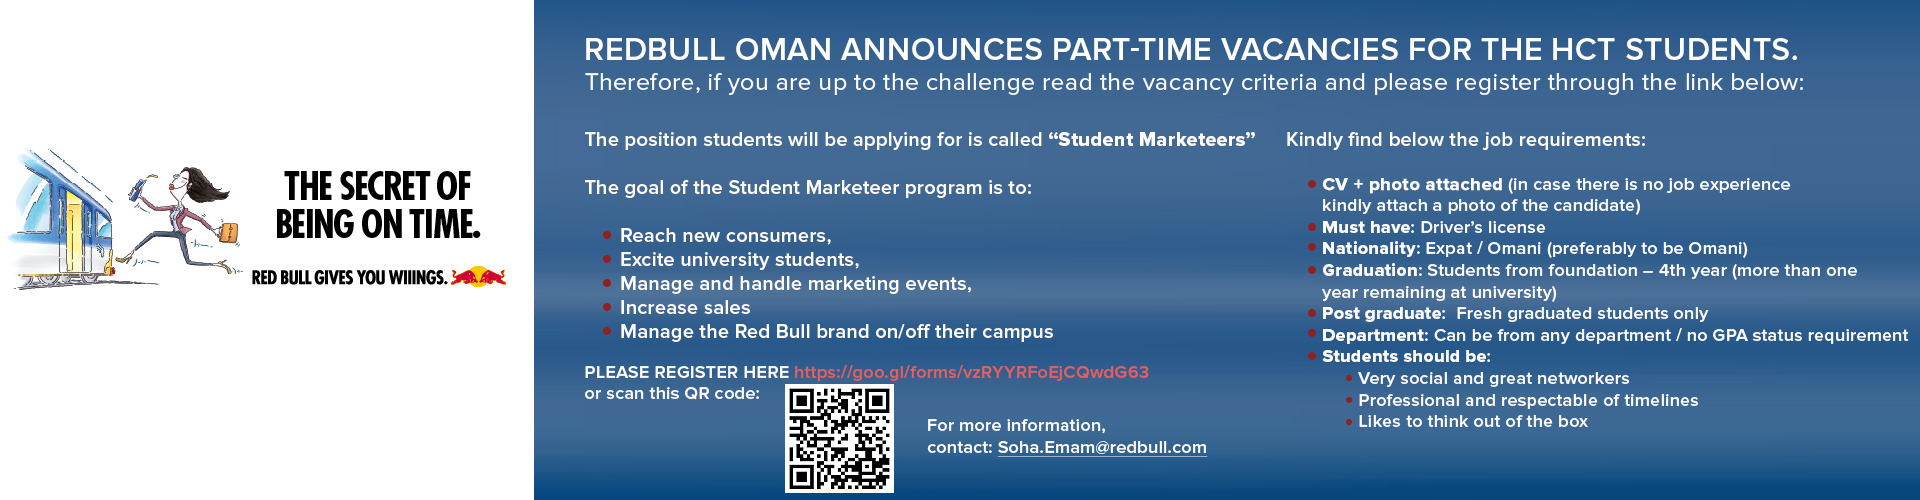 RedBull Oman announces Part-time vacancies for HCT students